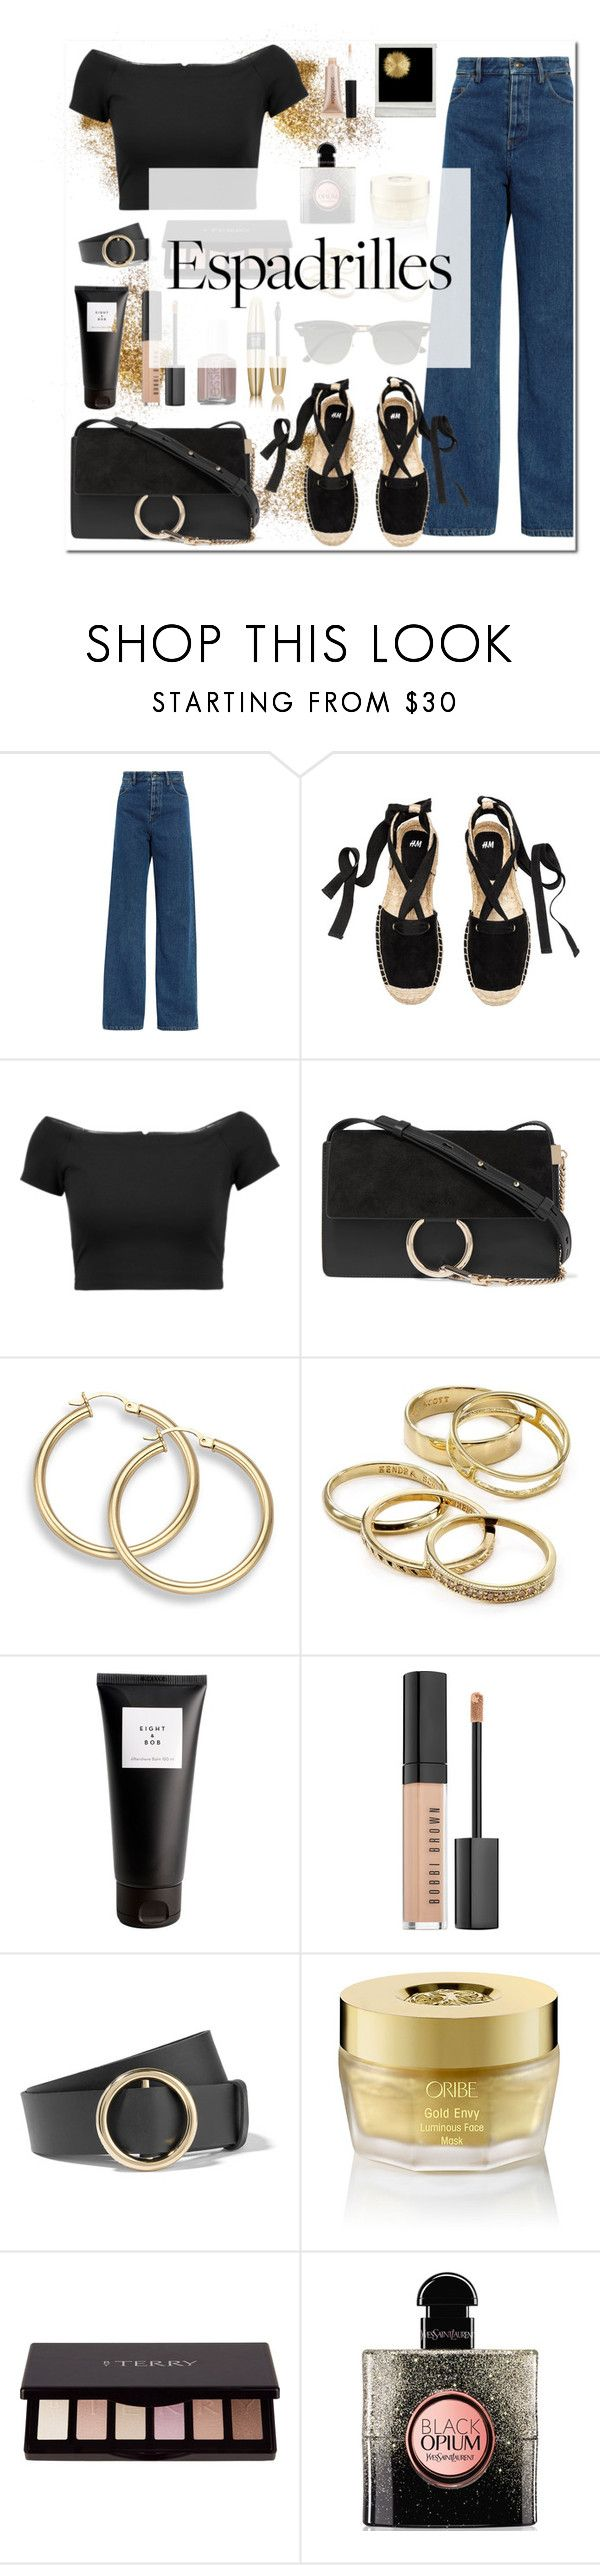 """""""Untitled #203"""" by onmytoesforalex ❤ liked on Polyvore featuring Y/Project, Alice + Olivia, Chloé, Kendra Scott, Eight & Bob, Bobbi Brown Cosmetics, Pippa, Victoria's Secret, Frame and Oribe"""